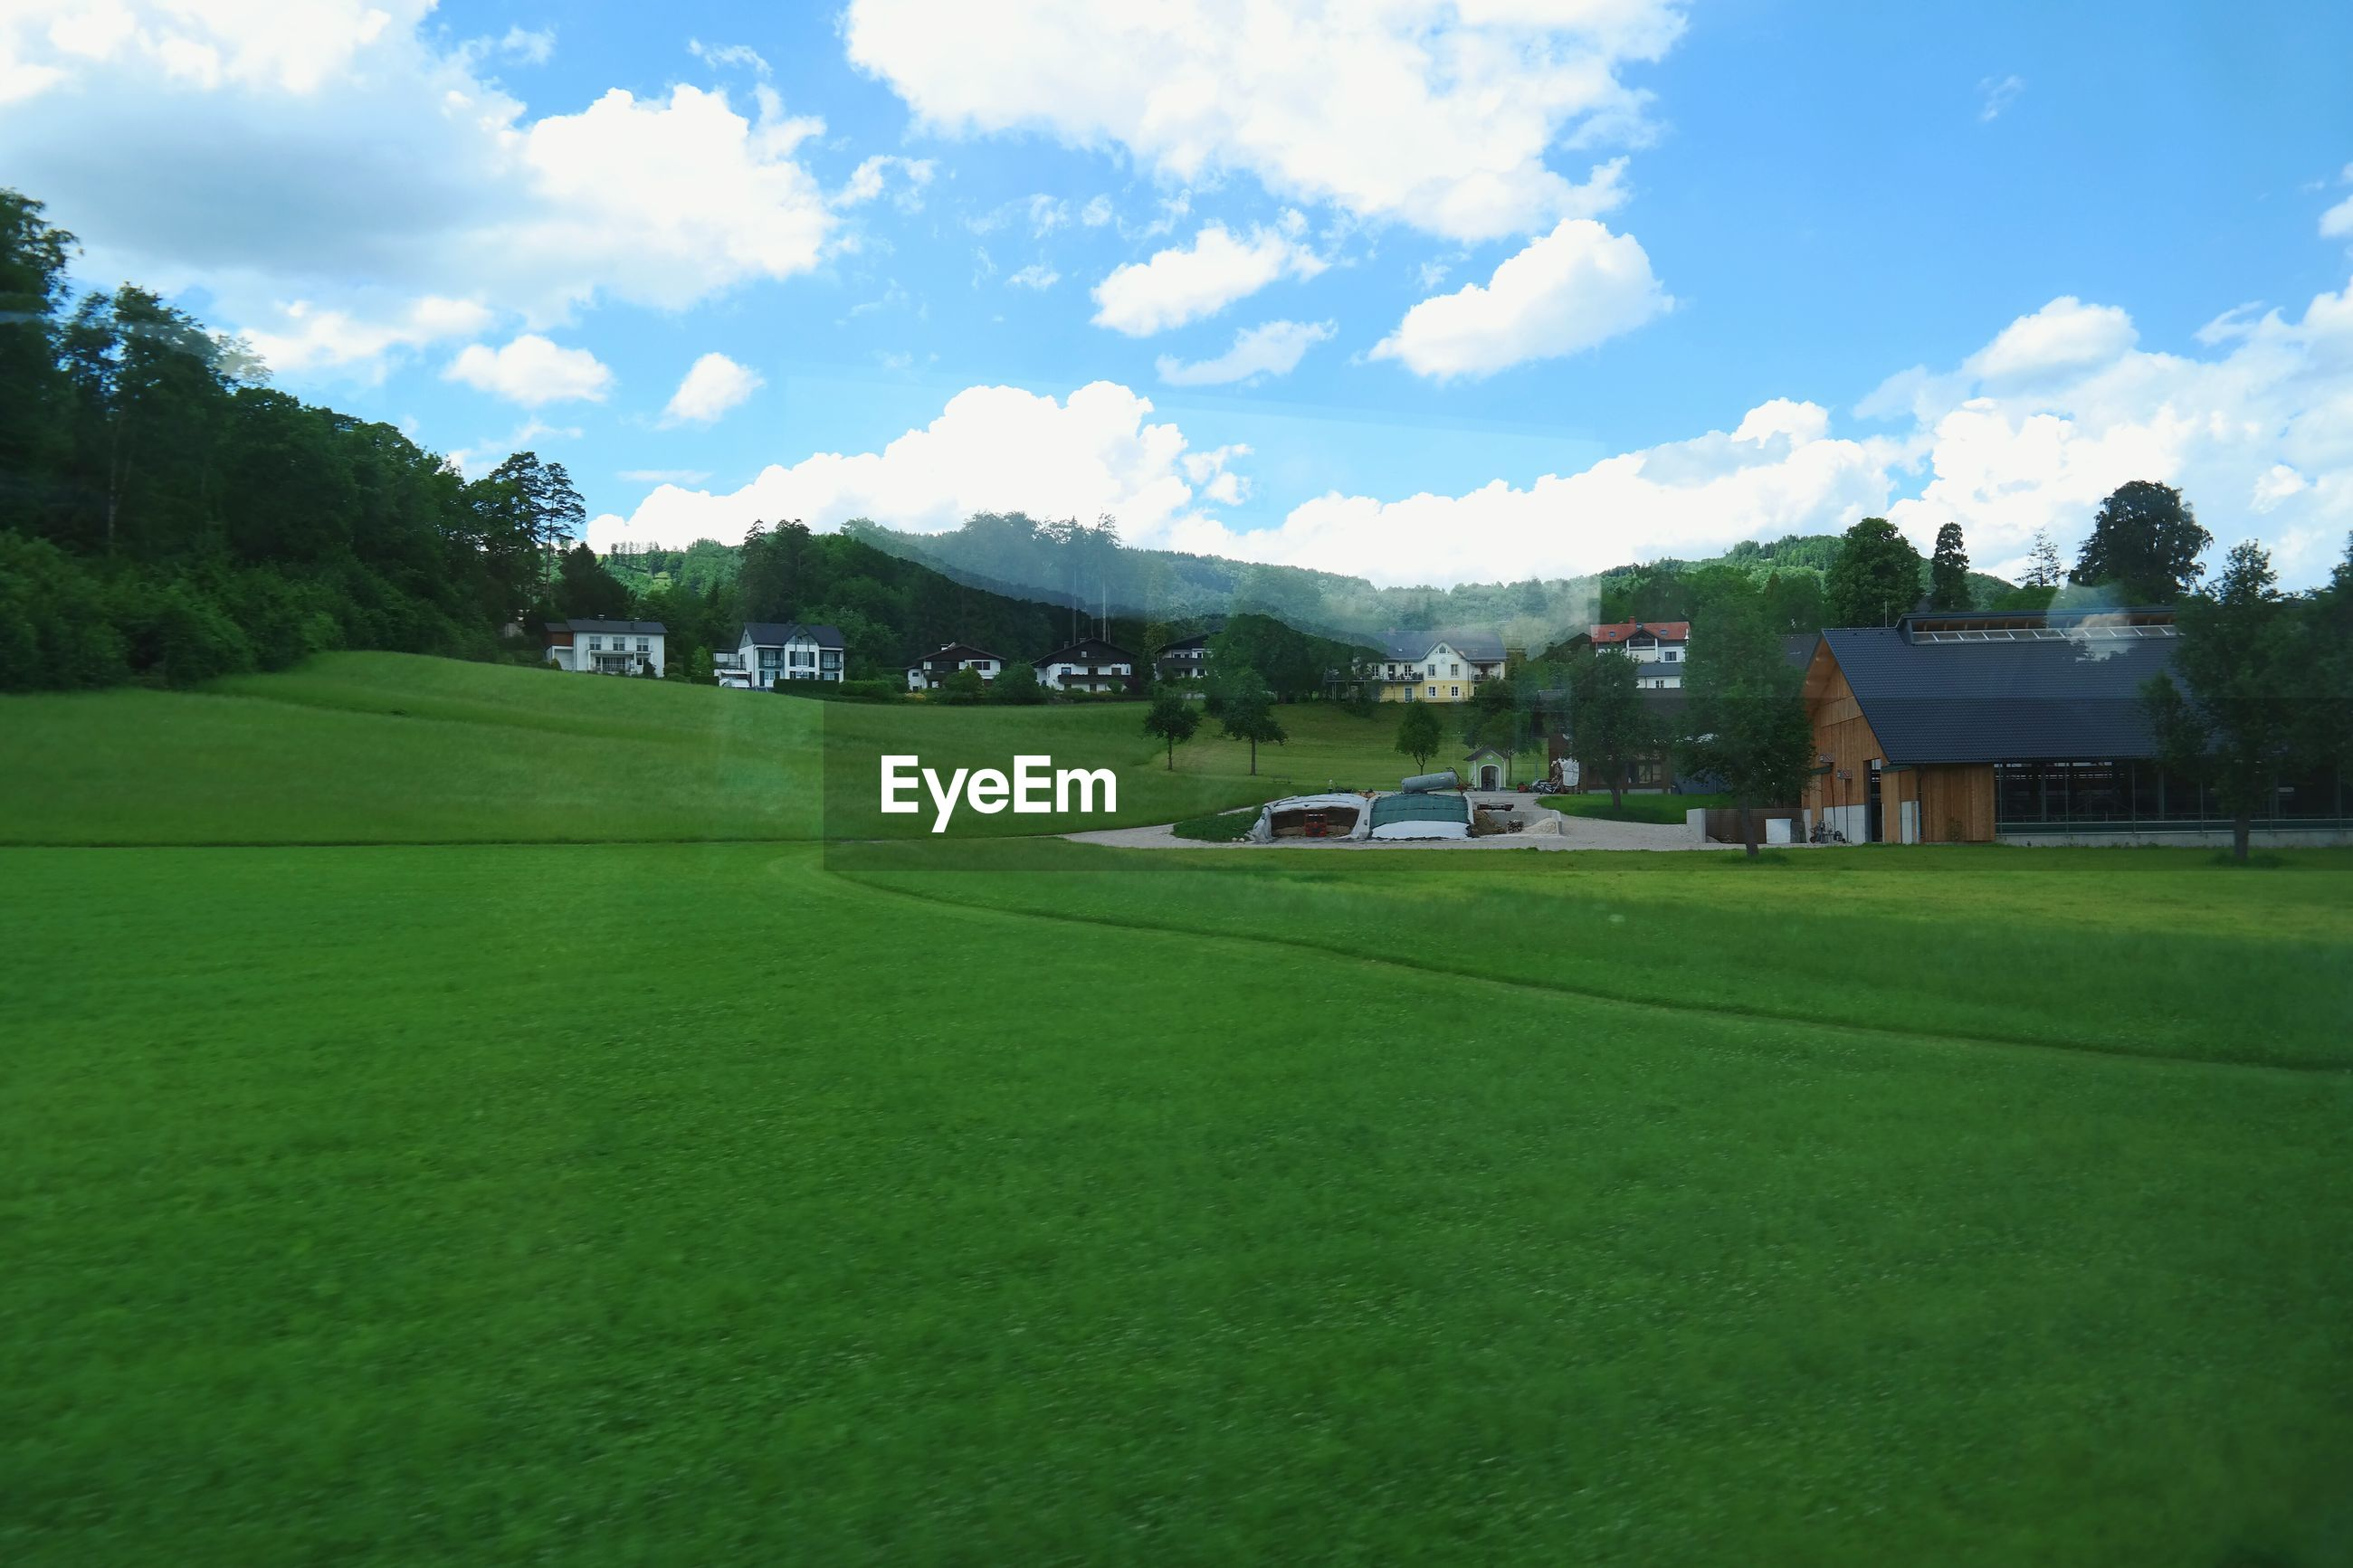 SCENIC VIEW OF GRASSY FIELD AGAINST HOUSES